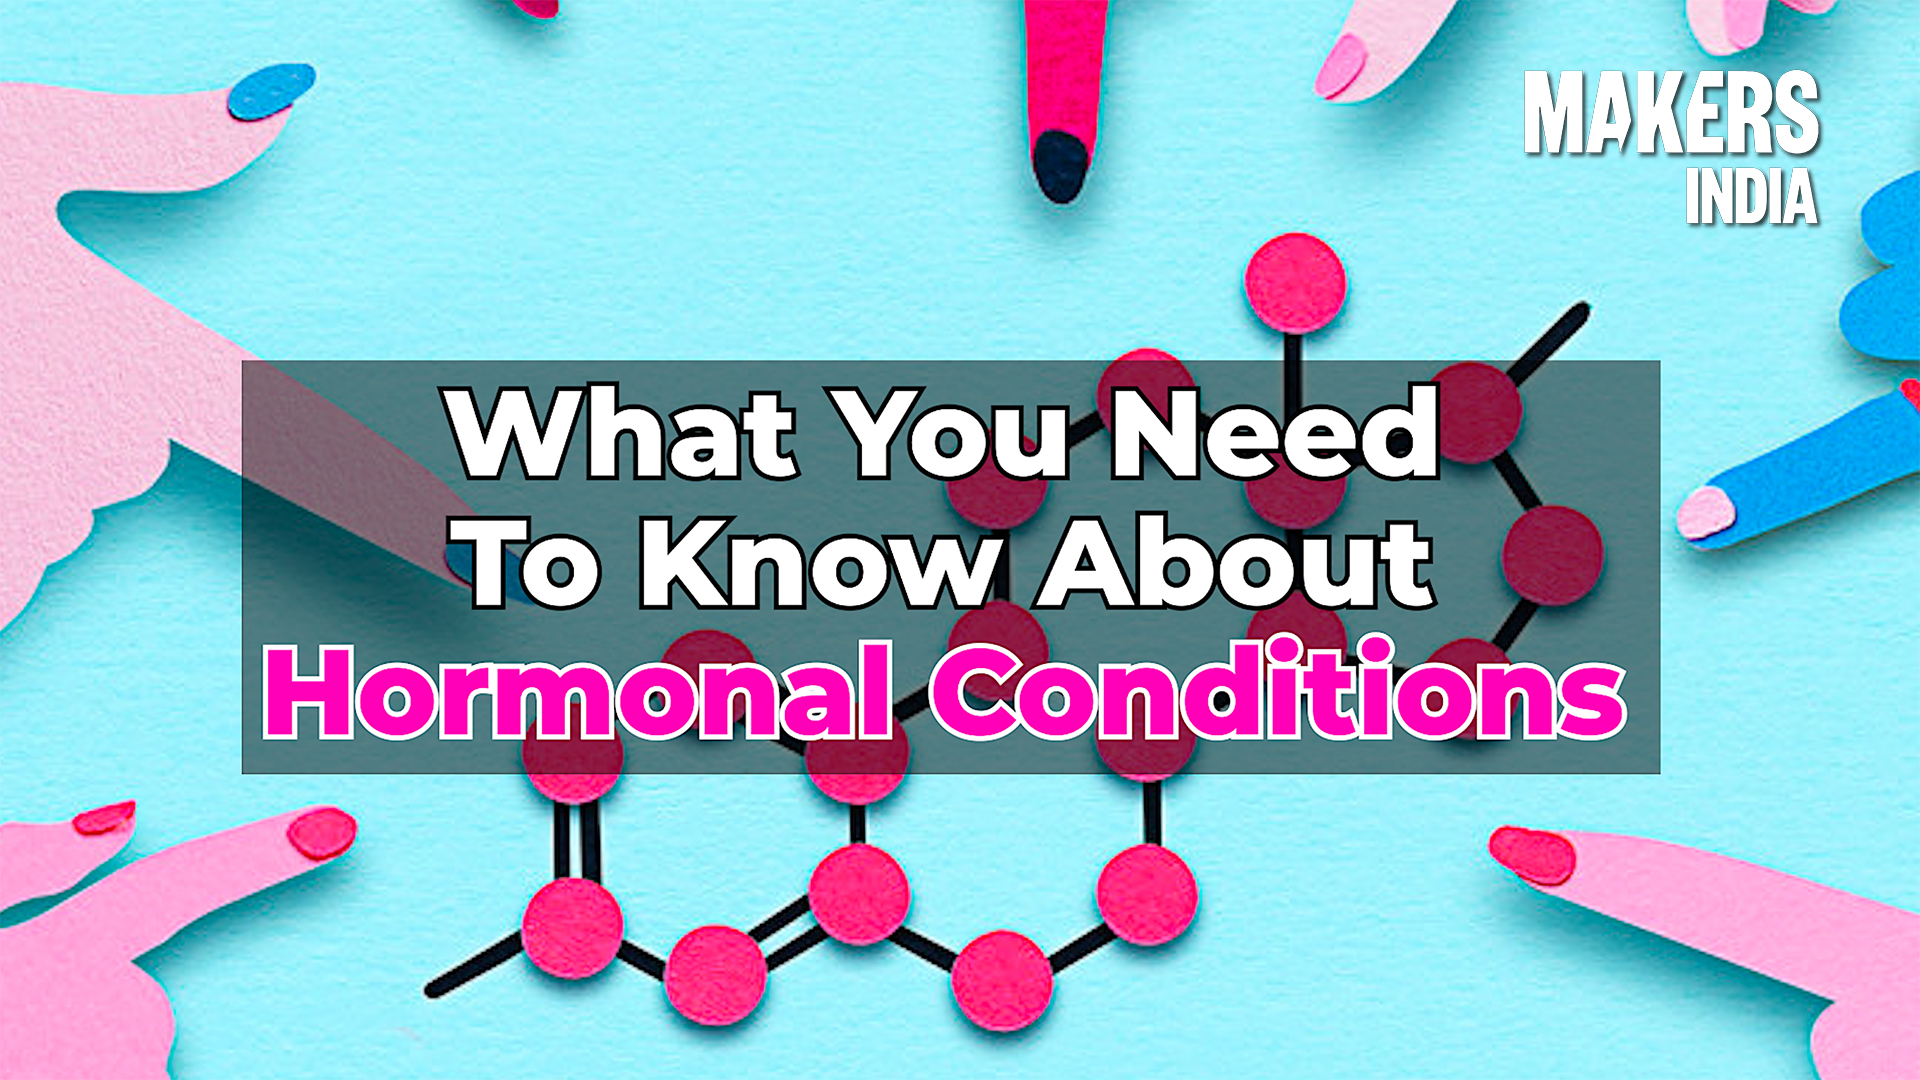 Women's Hormone Health: Conditions That You Need To Know About